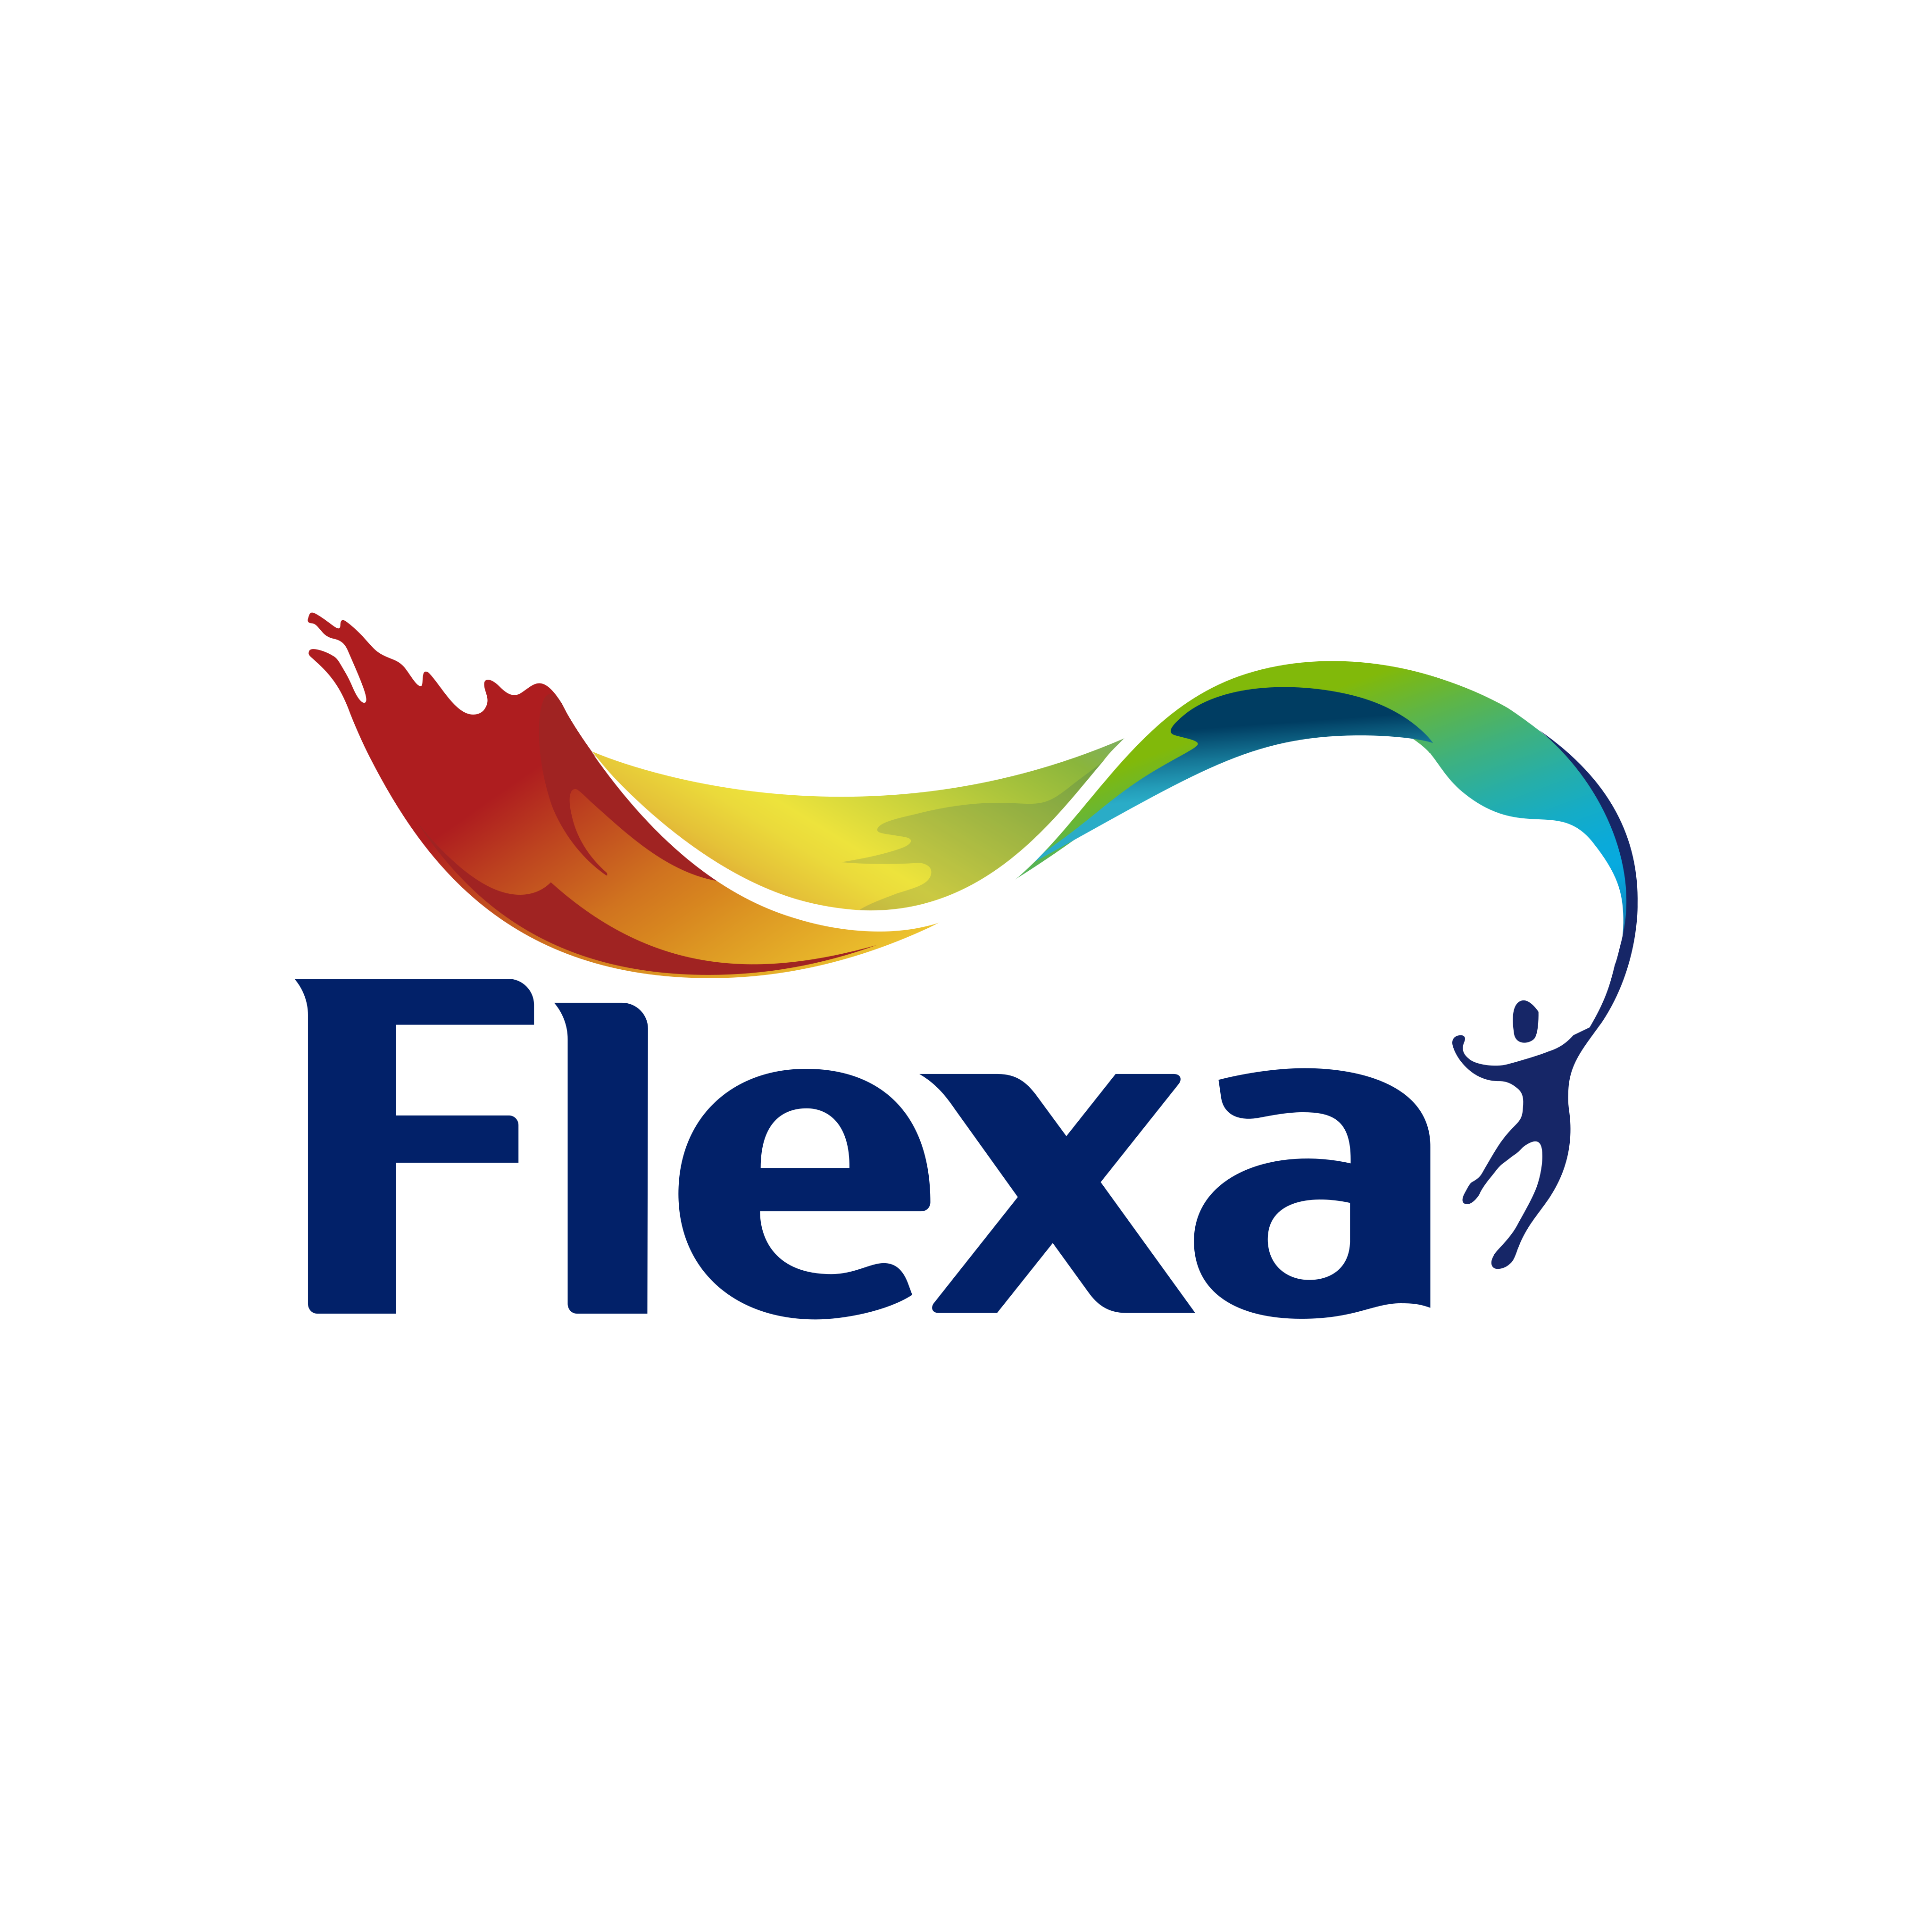 flexa logo 0 - Flexa Paints Logo